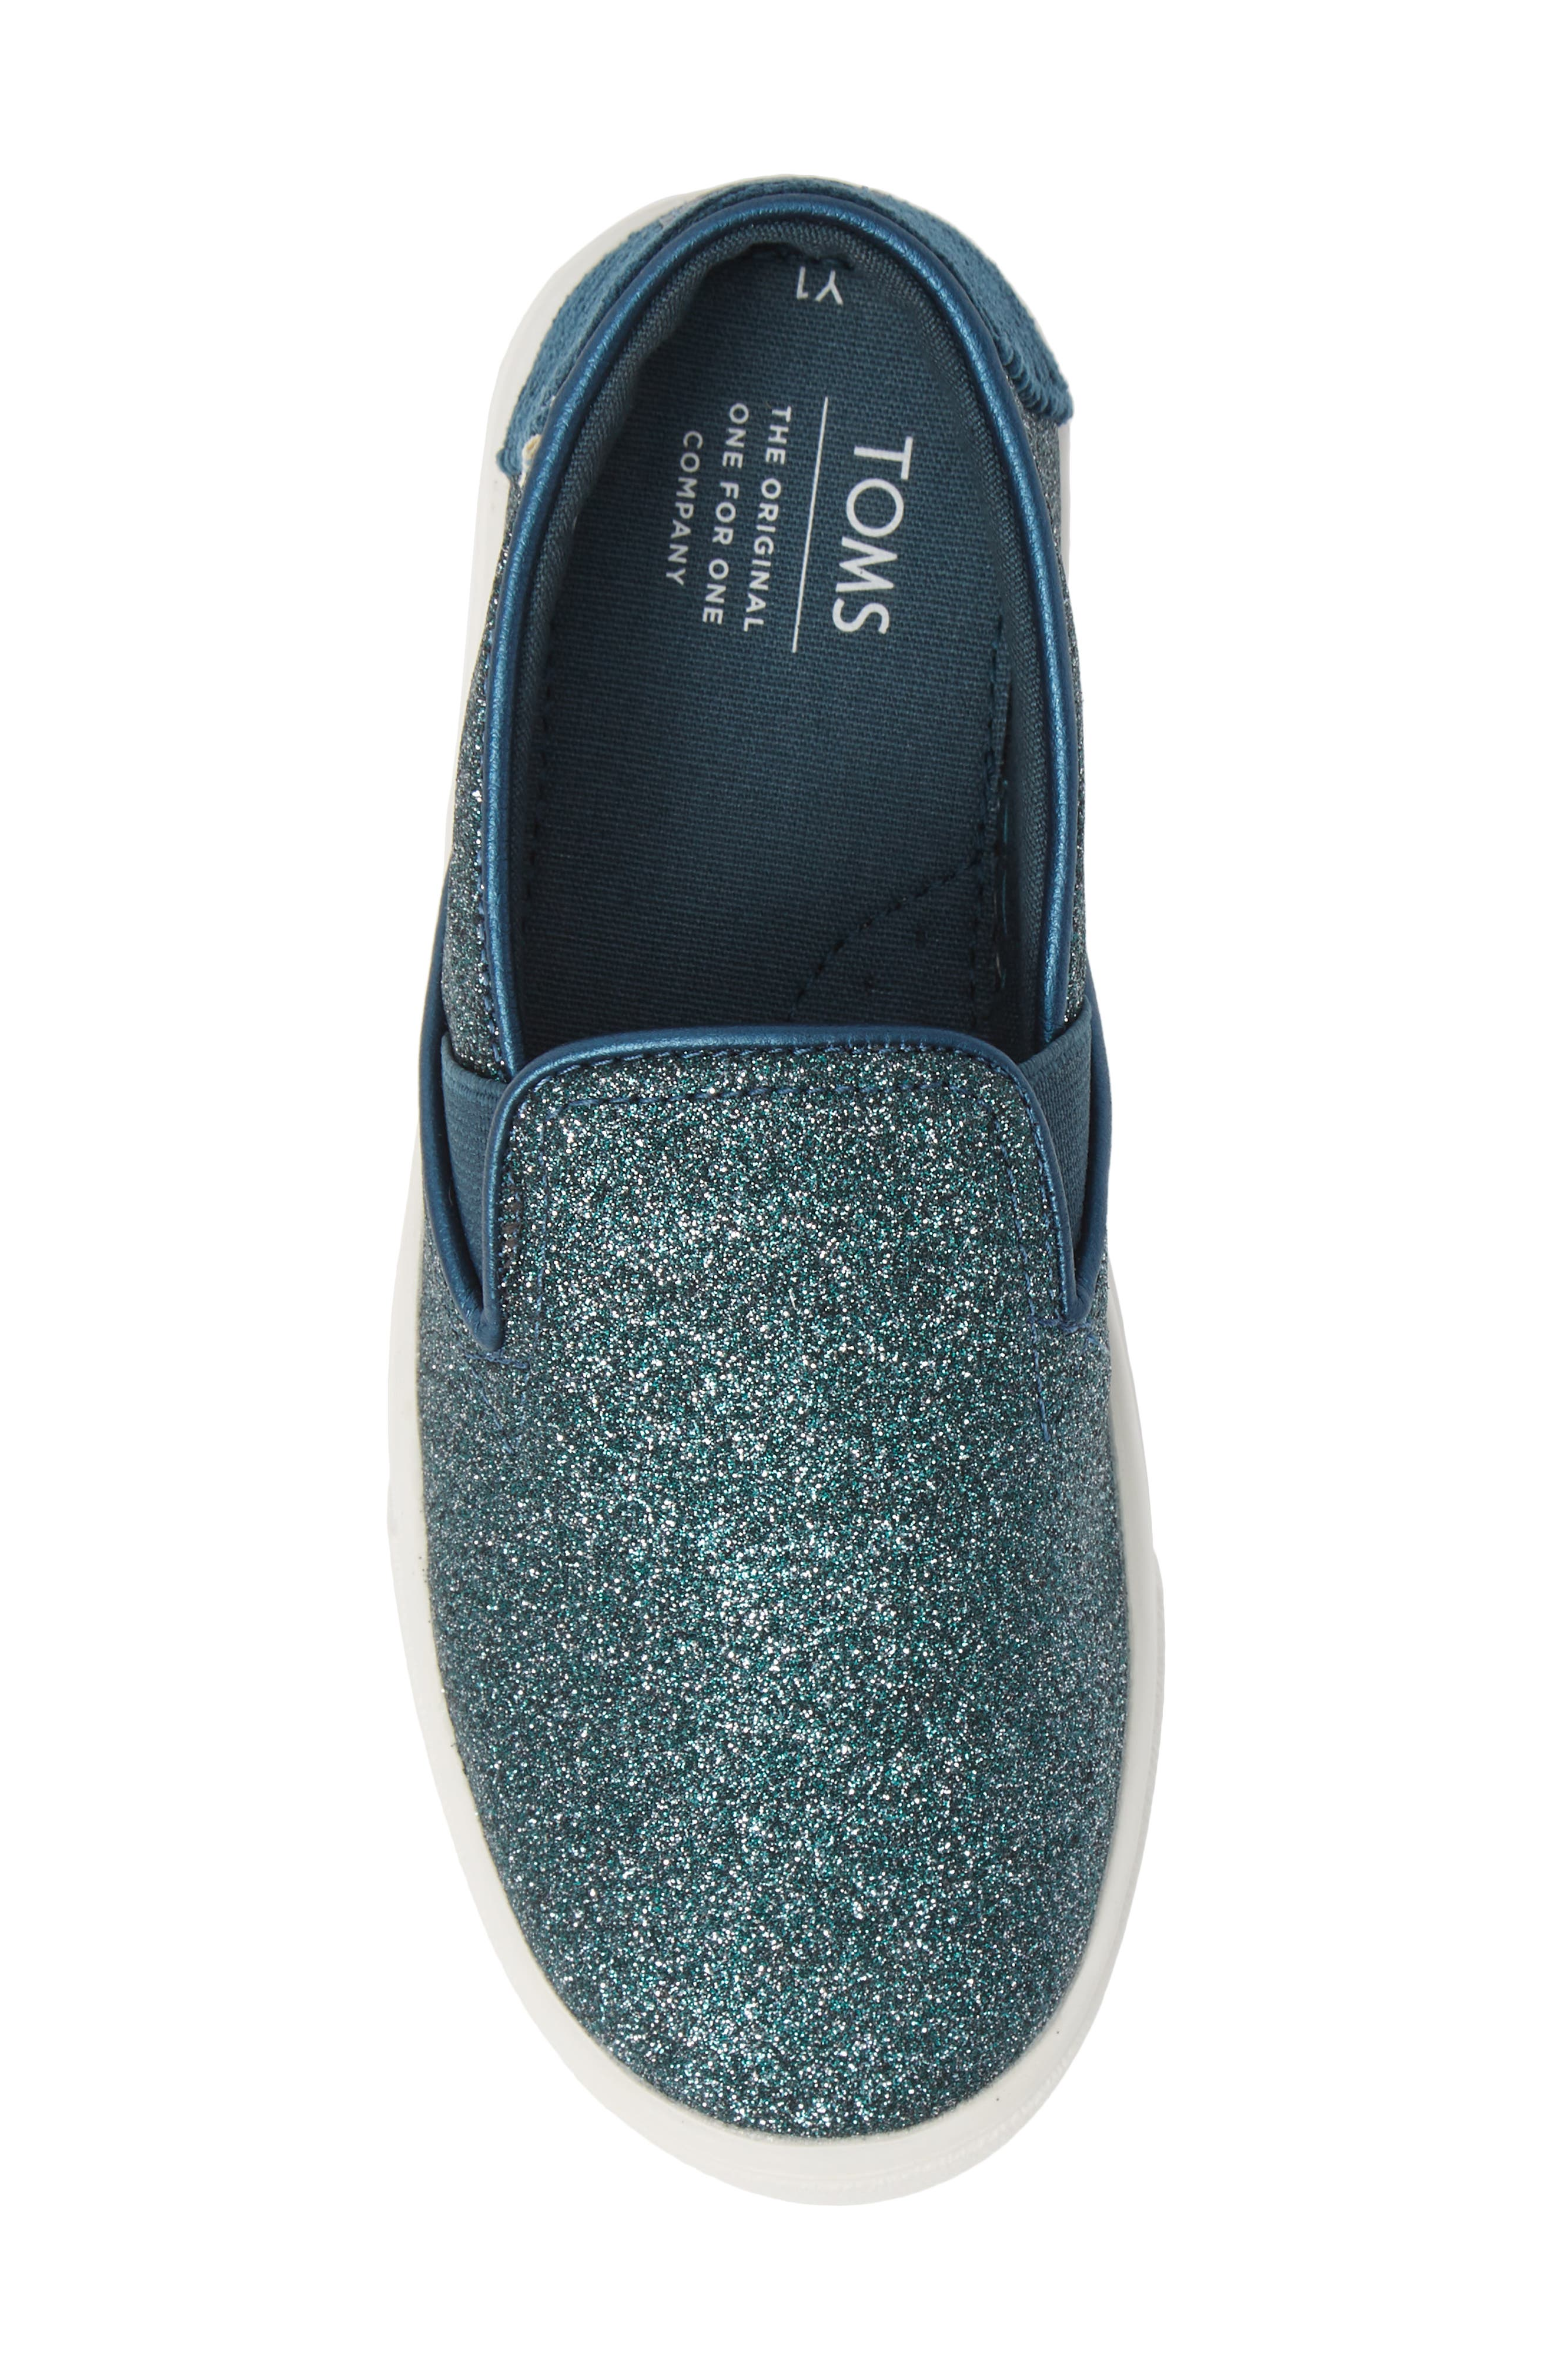 Luca Slip-On Sneaker,                             Alternate thumbnail 5, color,                             ATLANTIC IRIDESCENT/ CORDUROY